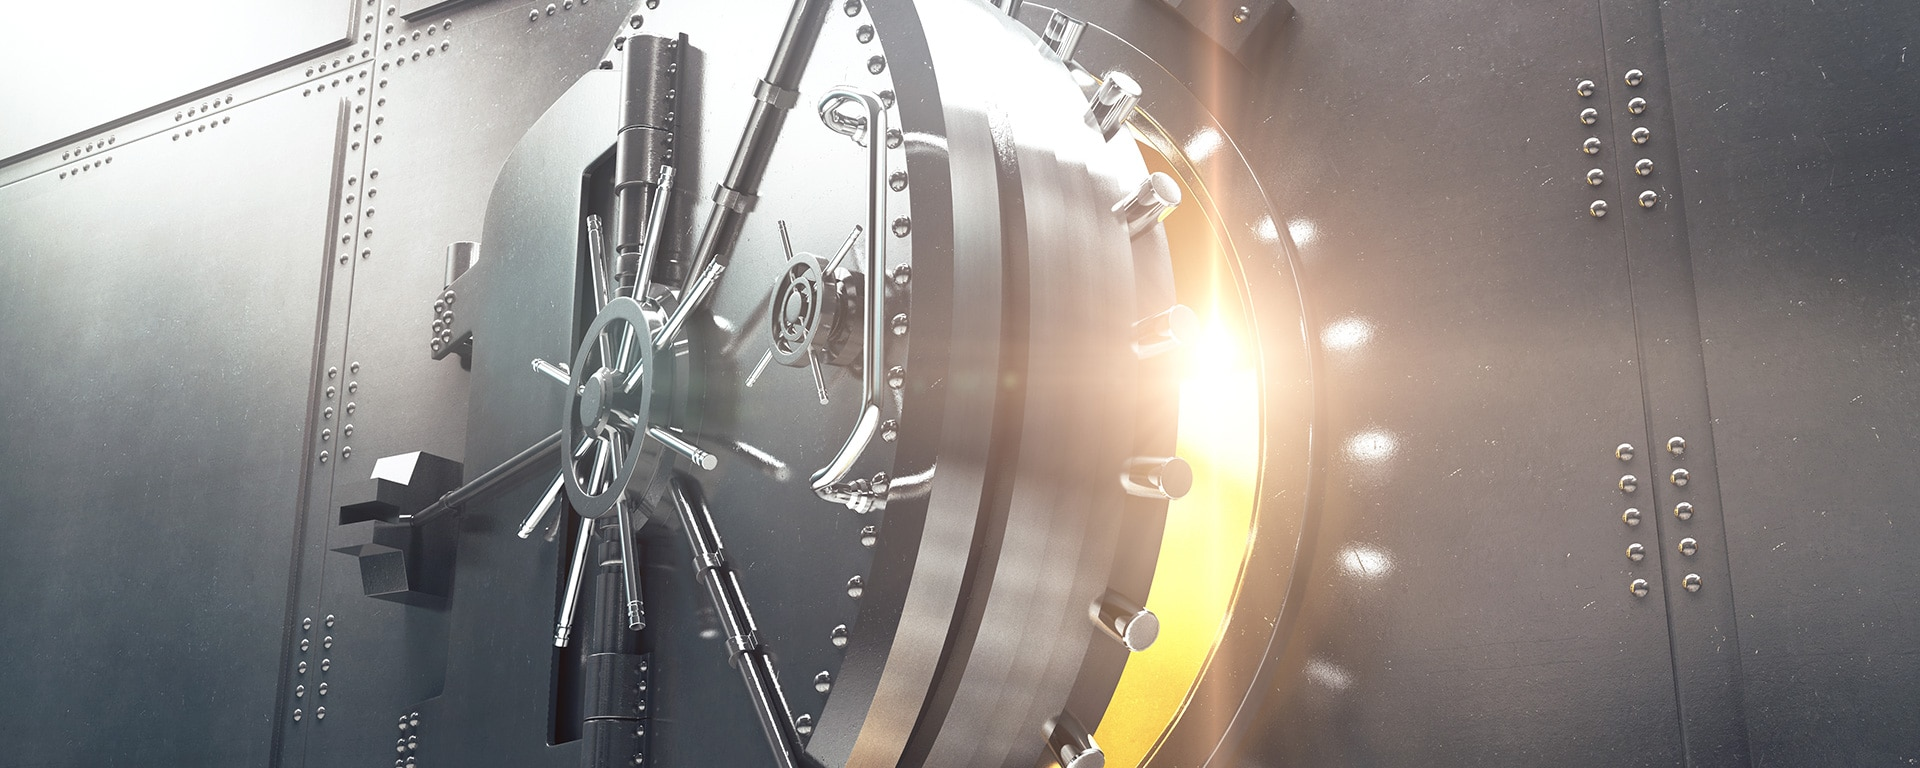 Top 4 Challenges for Banks and Financial Institutions in 2021 - blog header image